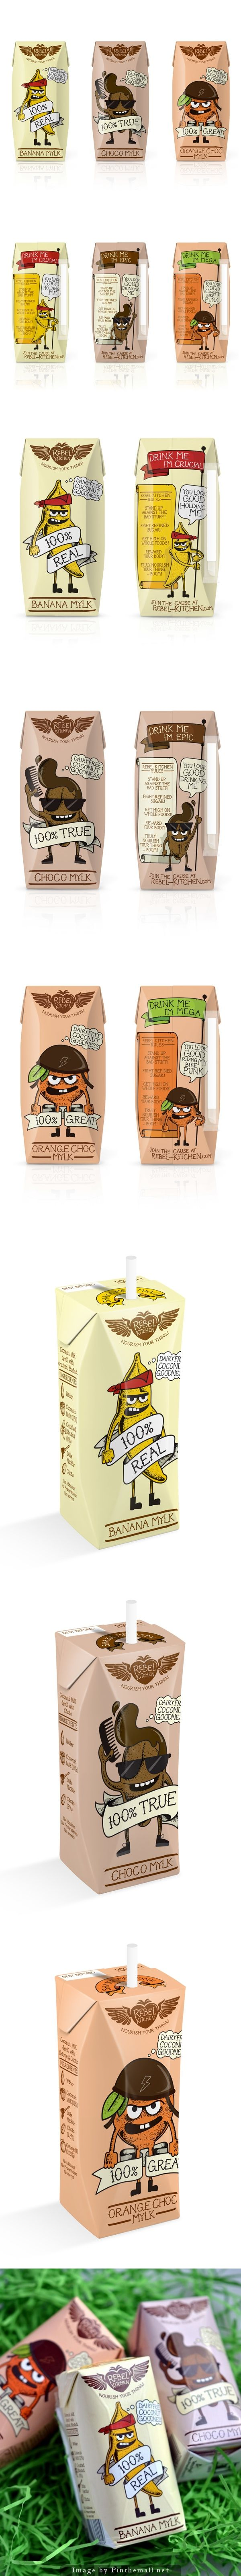 Rebel Kitchen: your daily #packaging smile : ) Curated by Packaging Diva PD created via http://www.behance.net/gallery/14470503/Rebel-Kitchen-Kids-Packaging